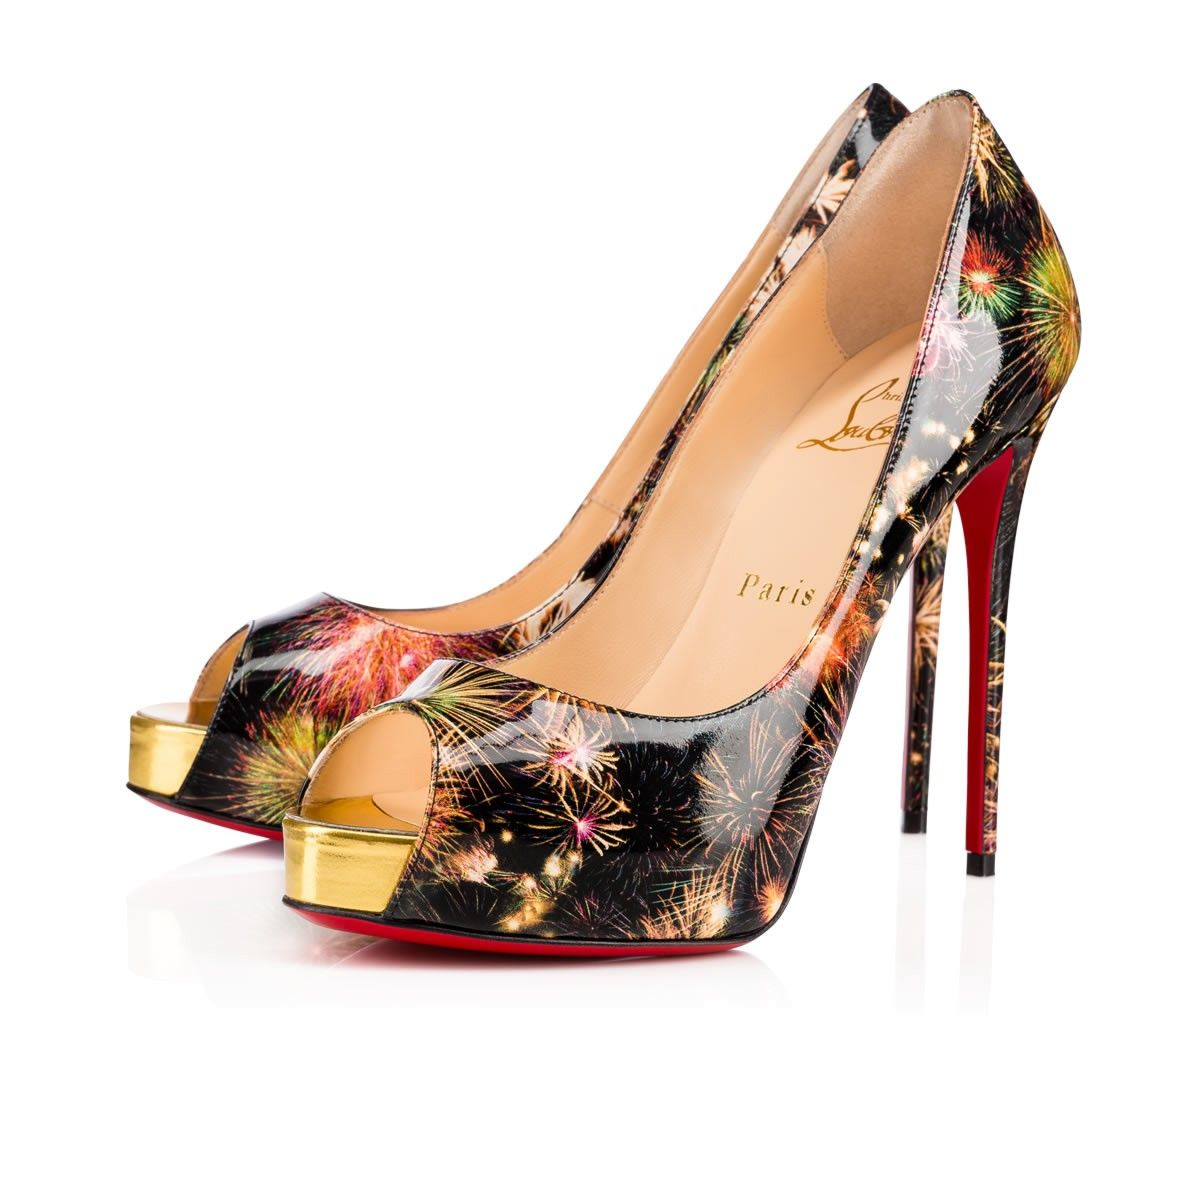 the best attitude b5dc6 d5592 CHRISTIAN LOUBOUTIN New Very Prive 120 Multi/Gold Patent ...